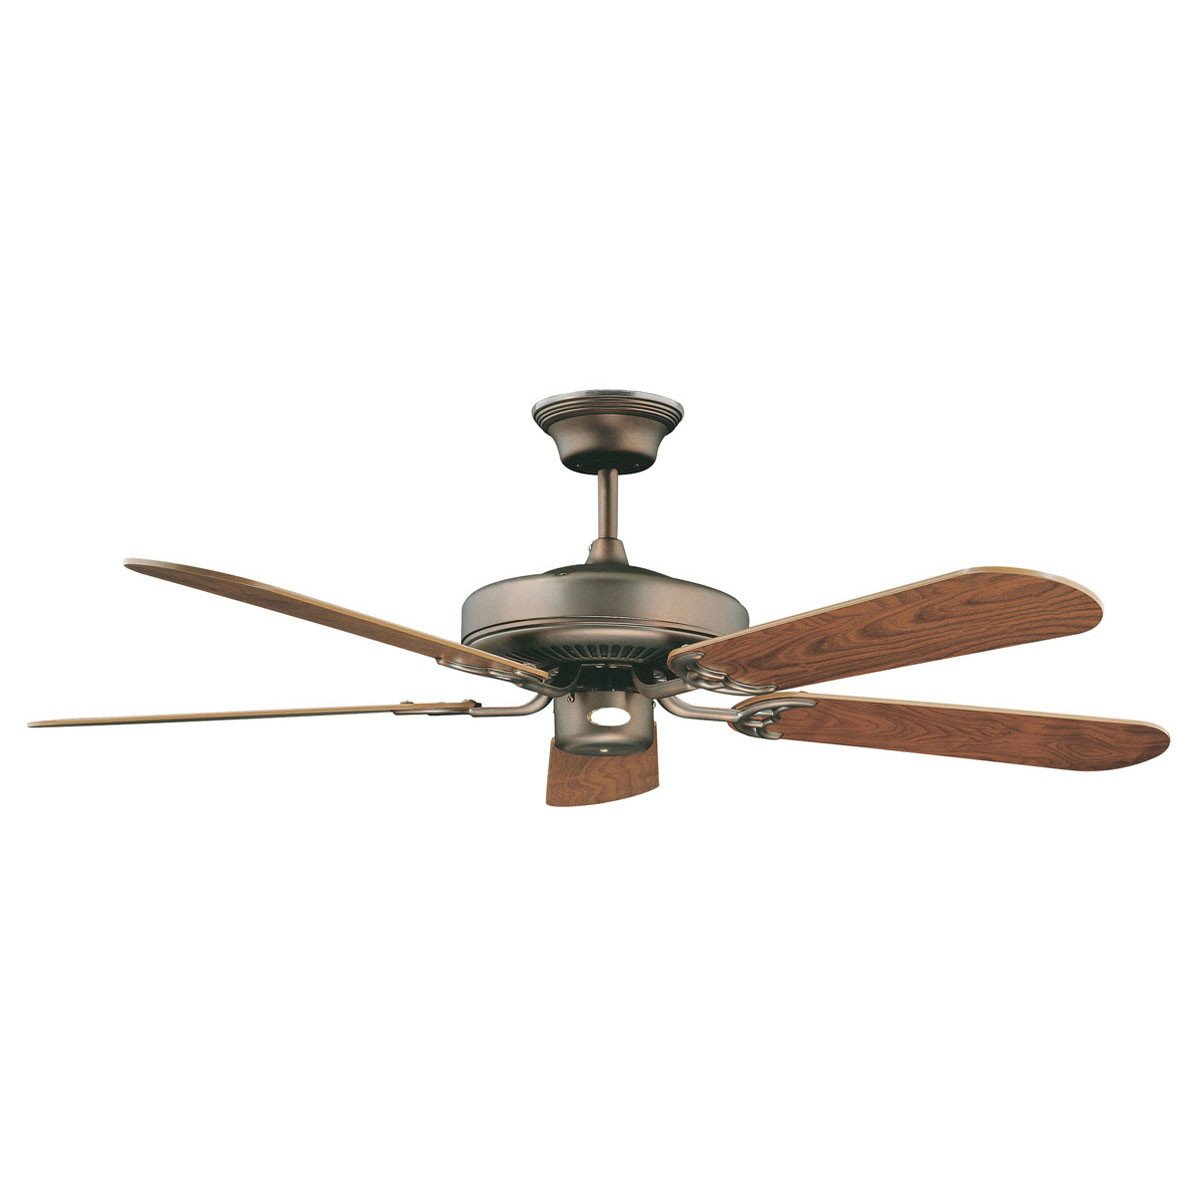 "Concord Fans Decorama Energy Saver Modern 52"" Oil Brushed Brass Ceiling Fan"